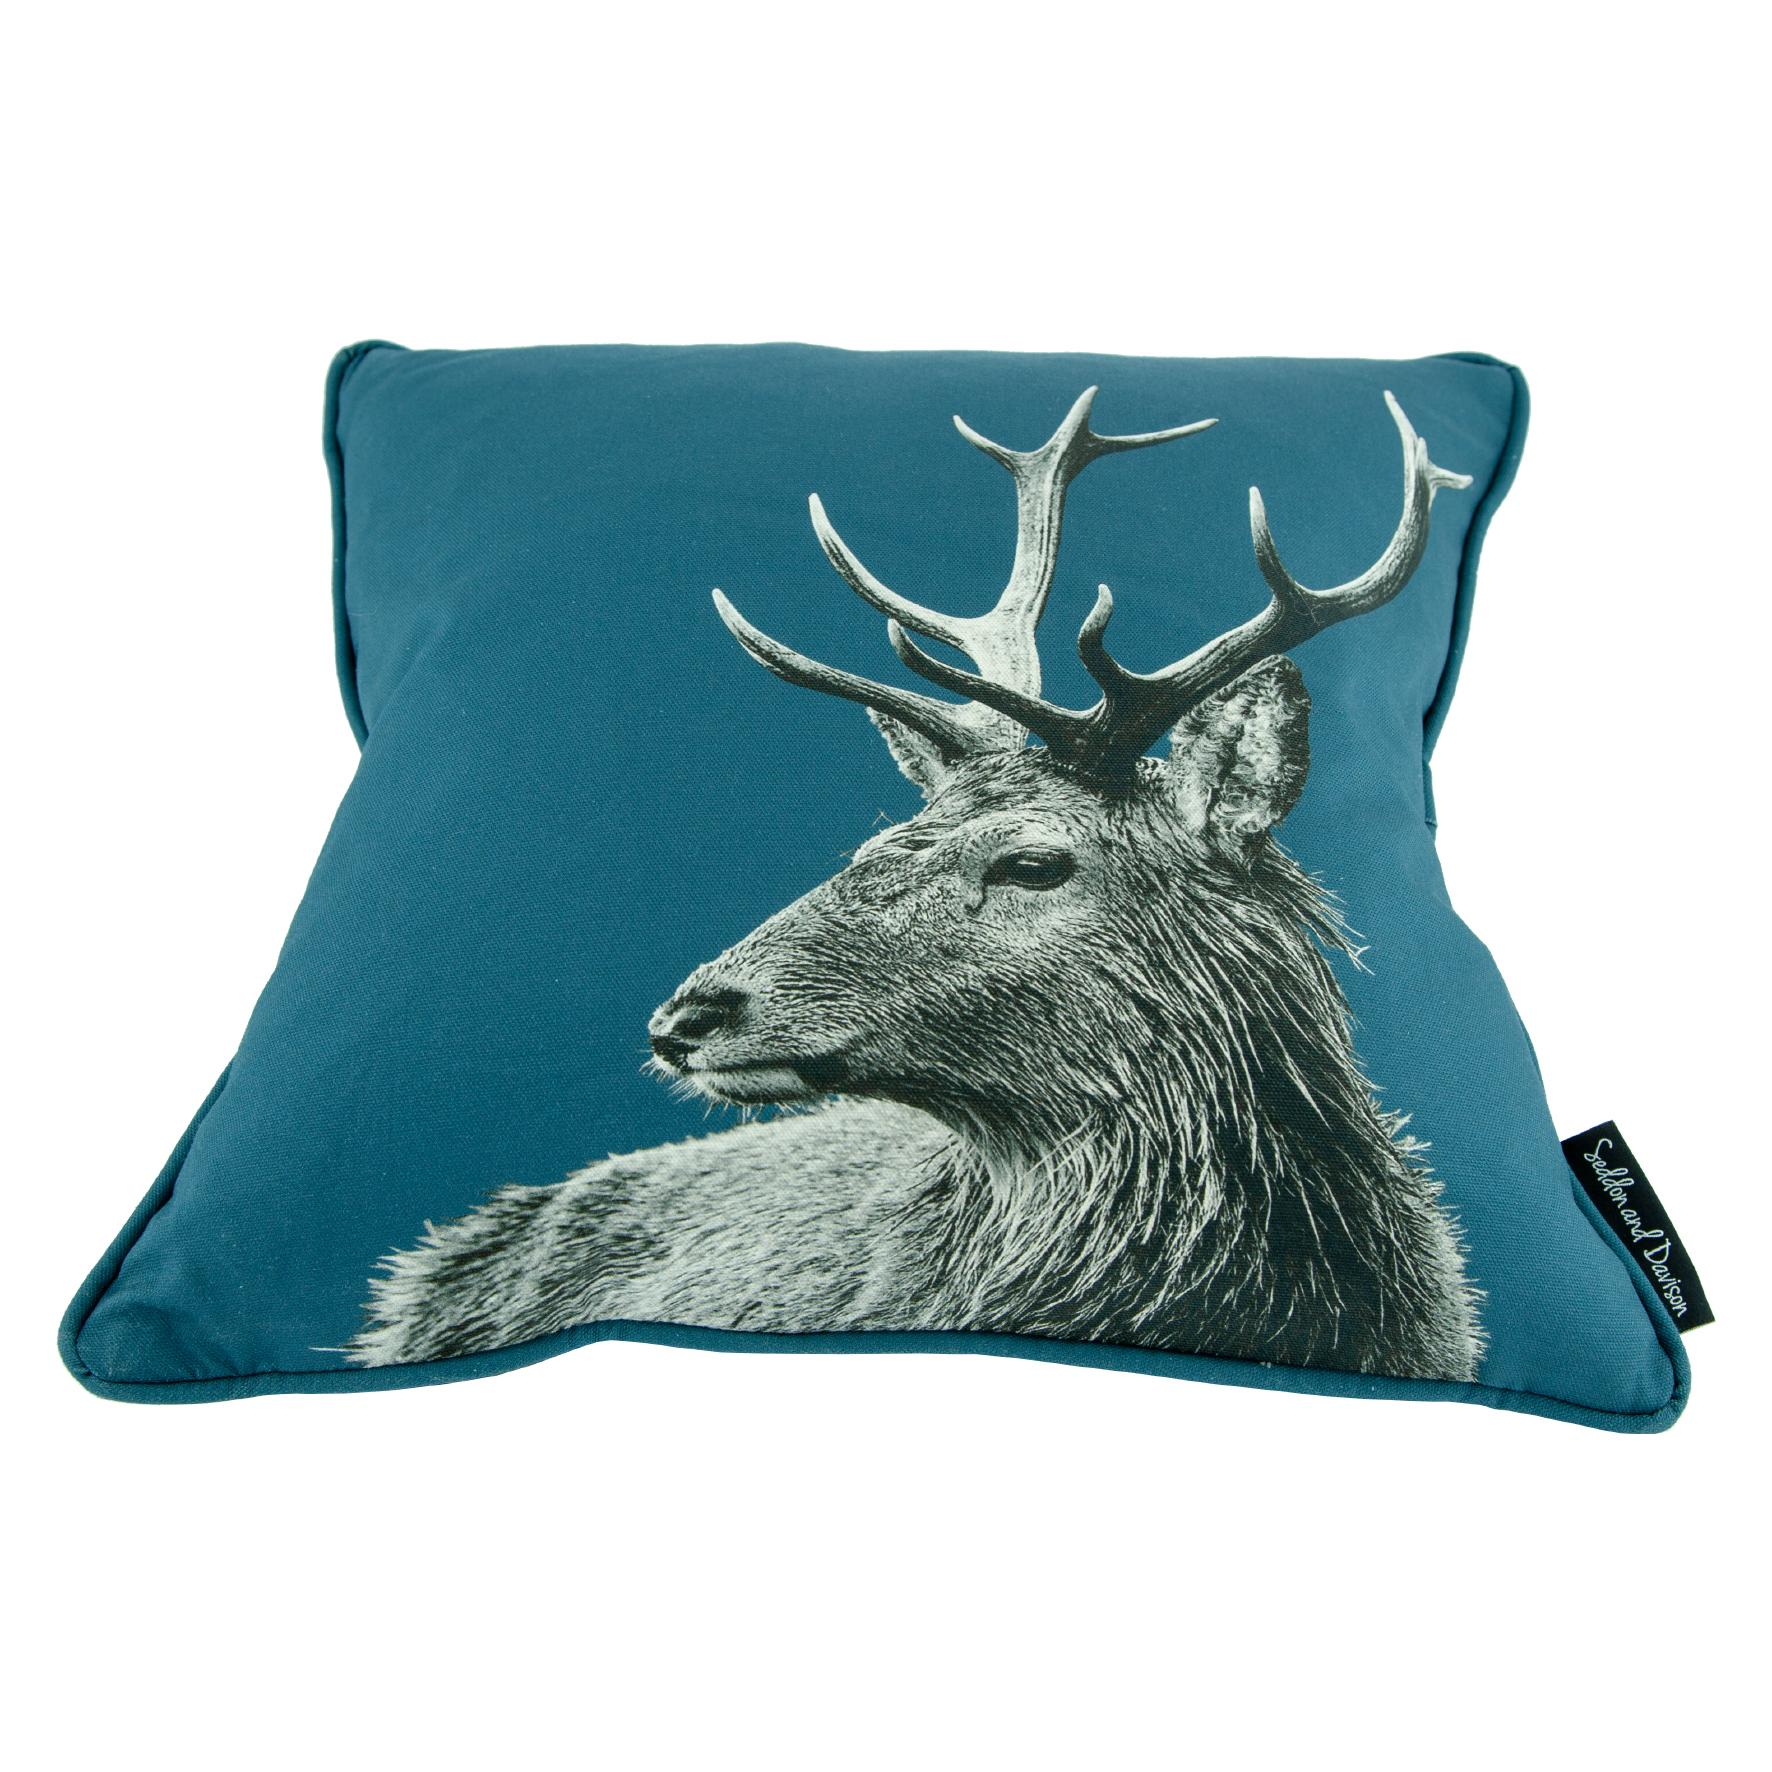 Highland Stag Cushion on Indigo